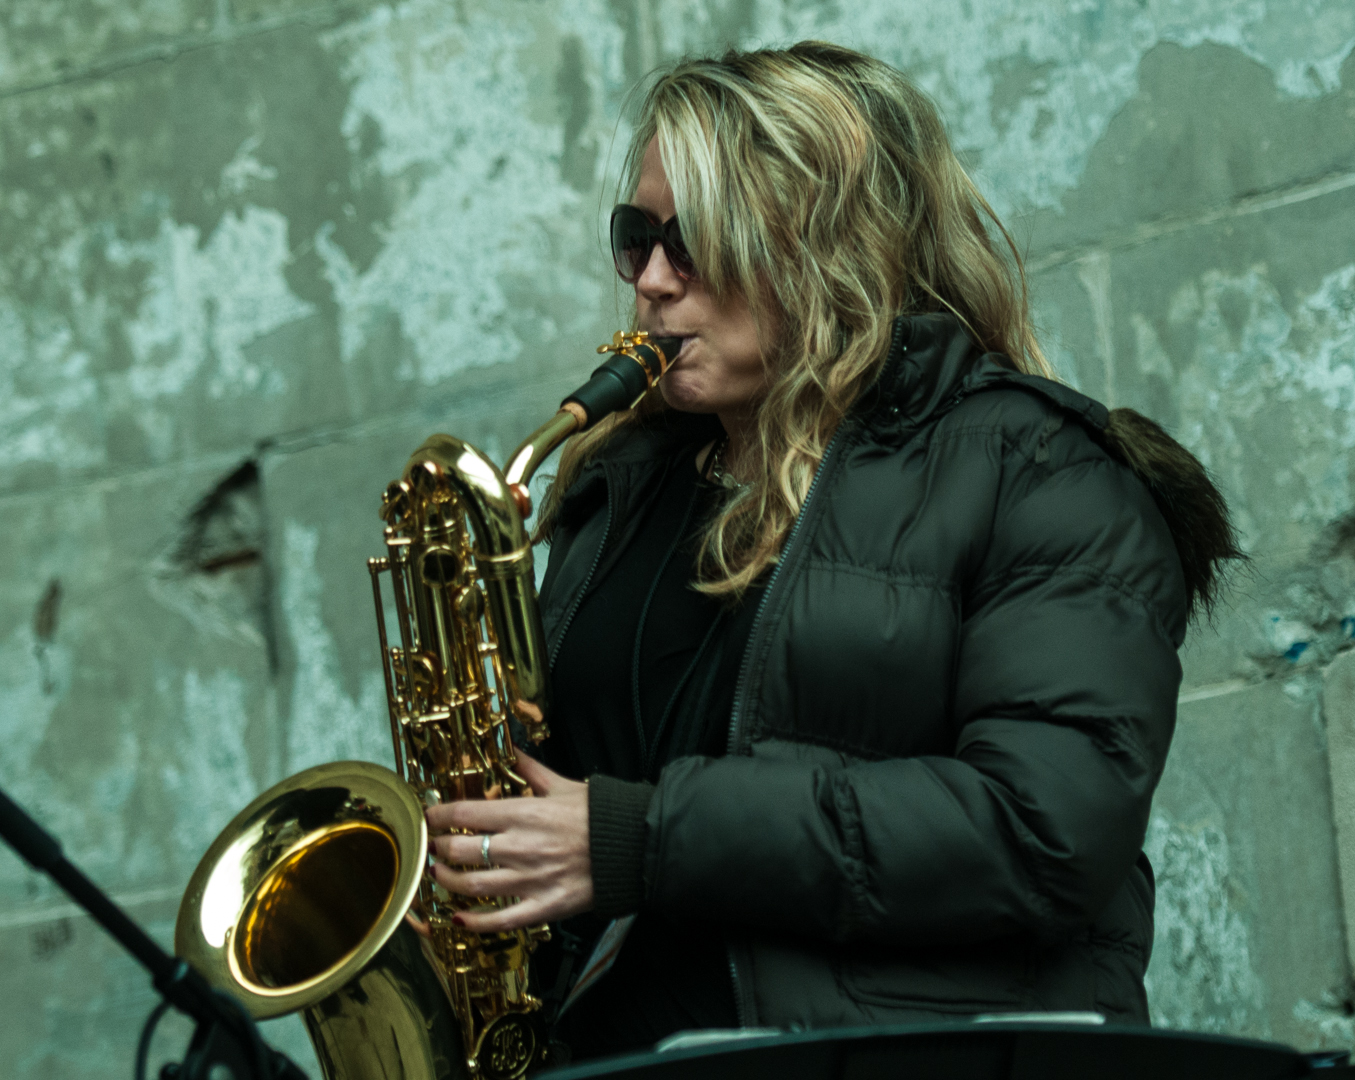 Lauren Sevian with the Mingus Big Band at Jazz and Colors in Central Park